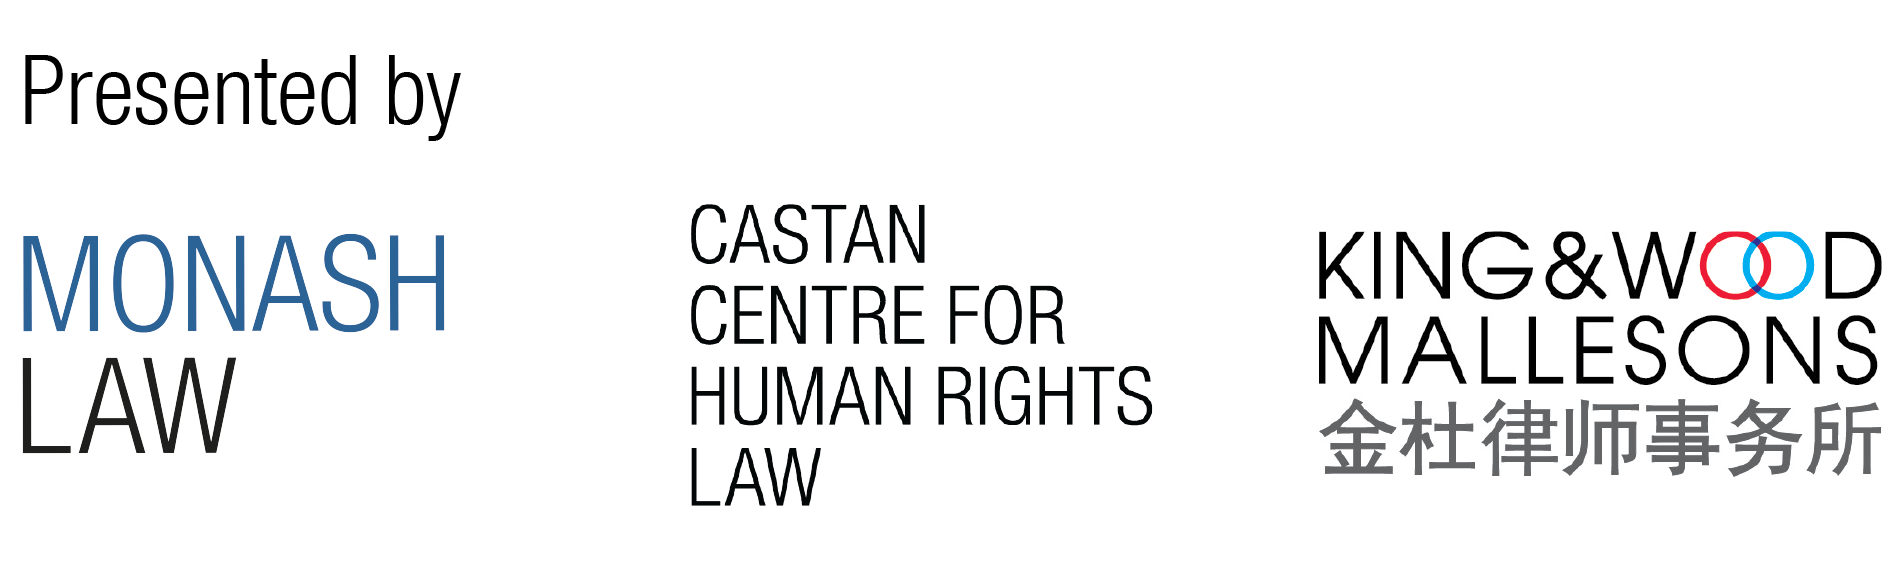 Event partners: Monash Law, Castan Centre for Human Rights Law and King & Wood Mallesons